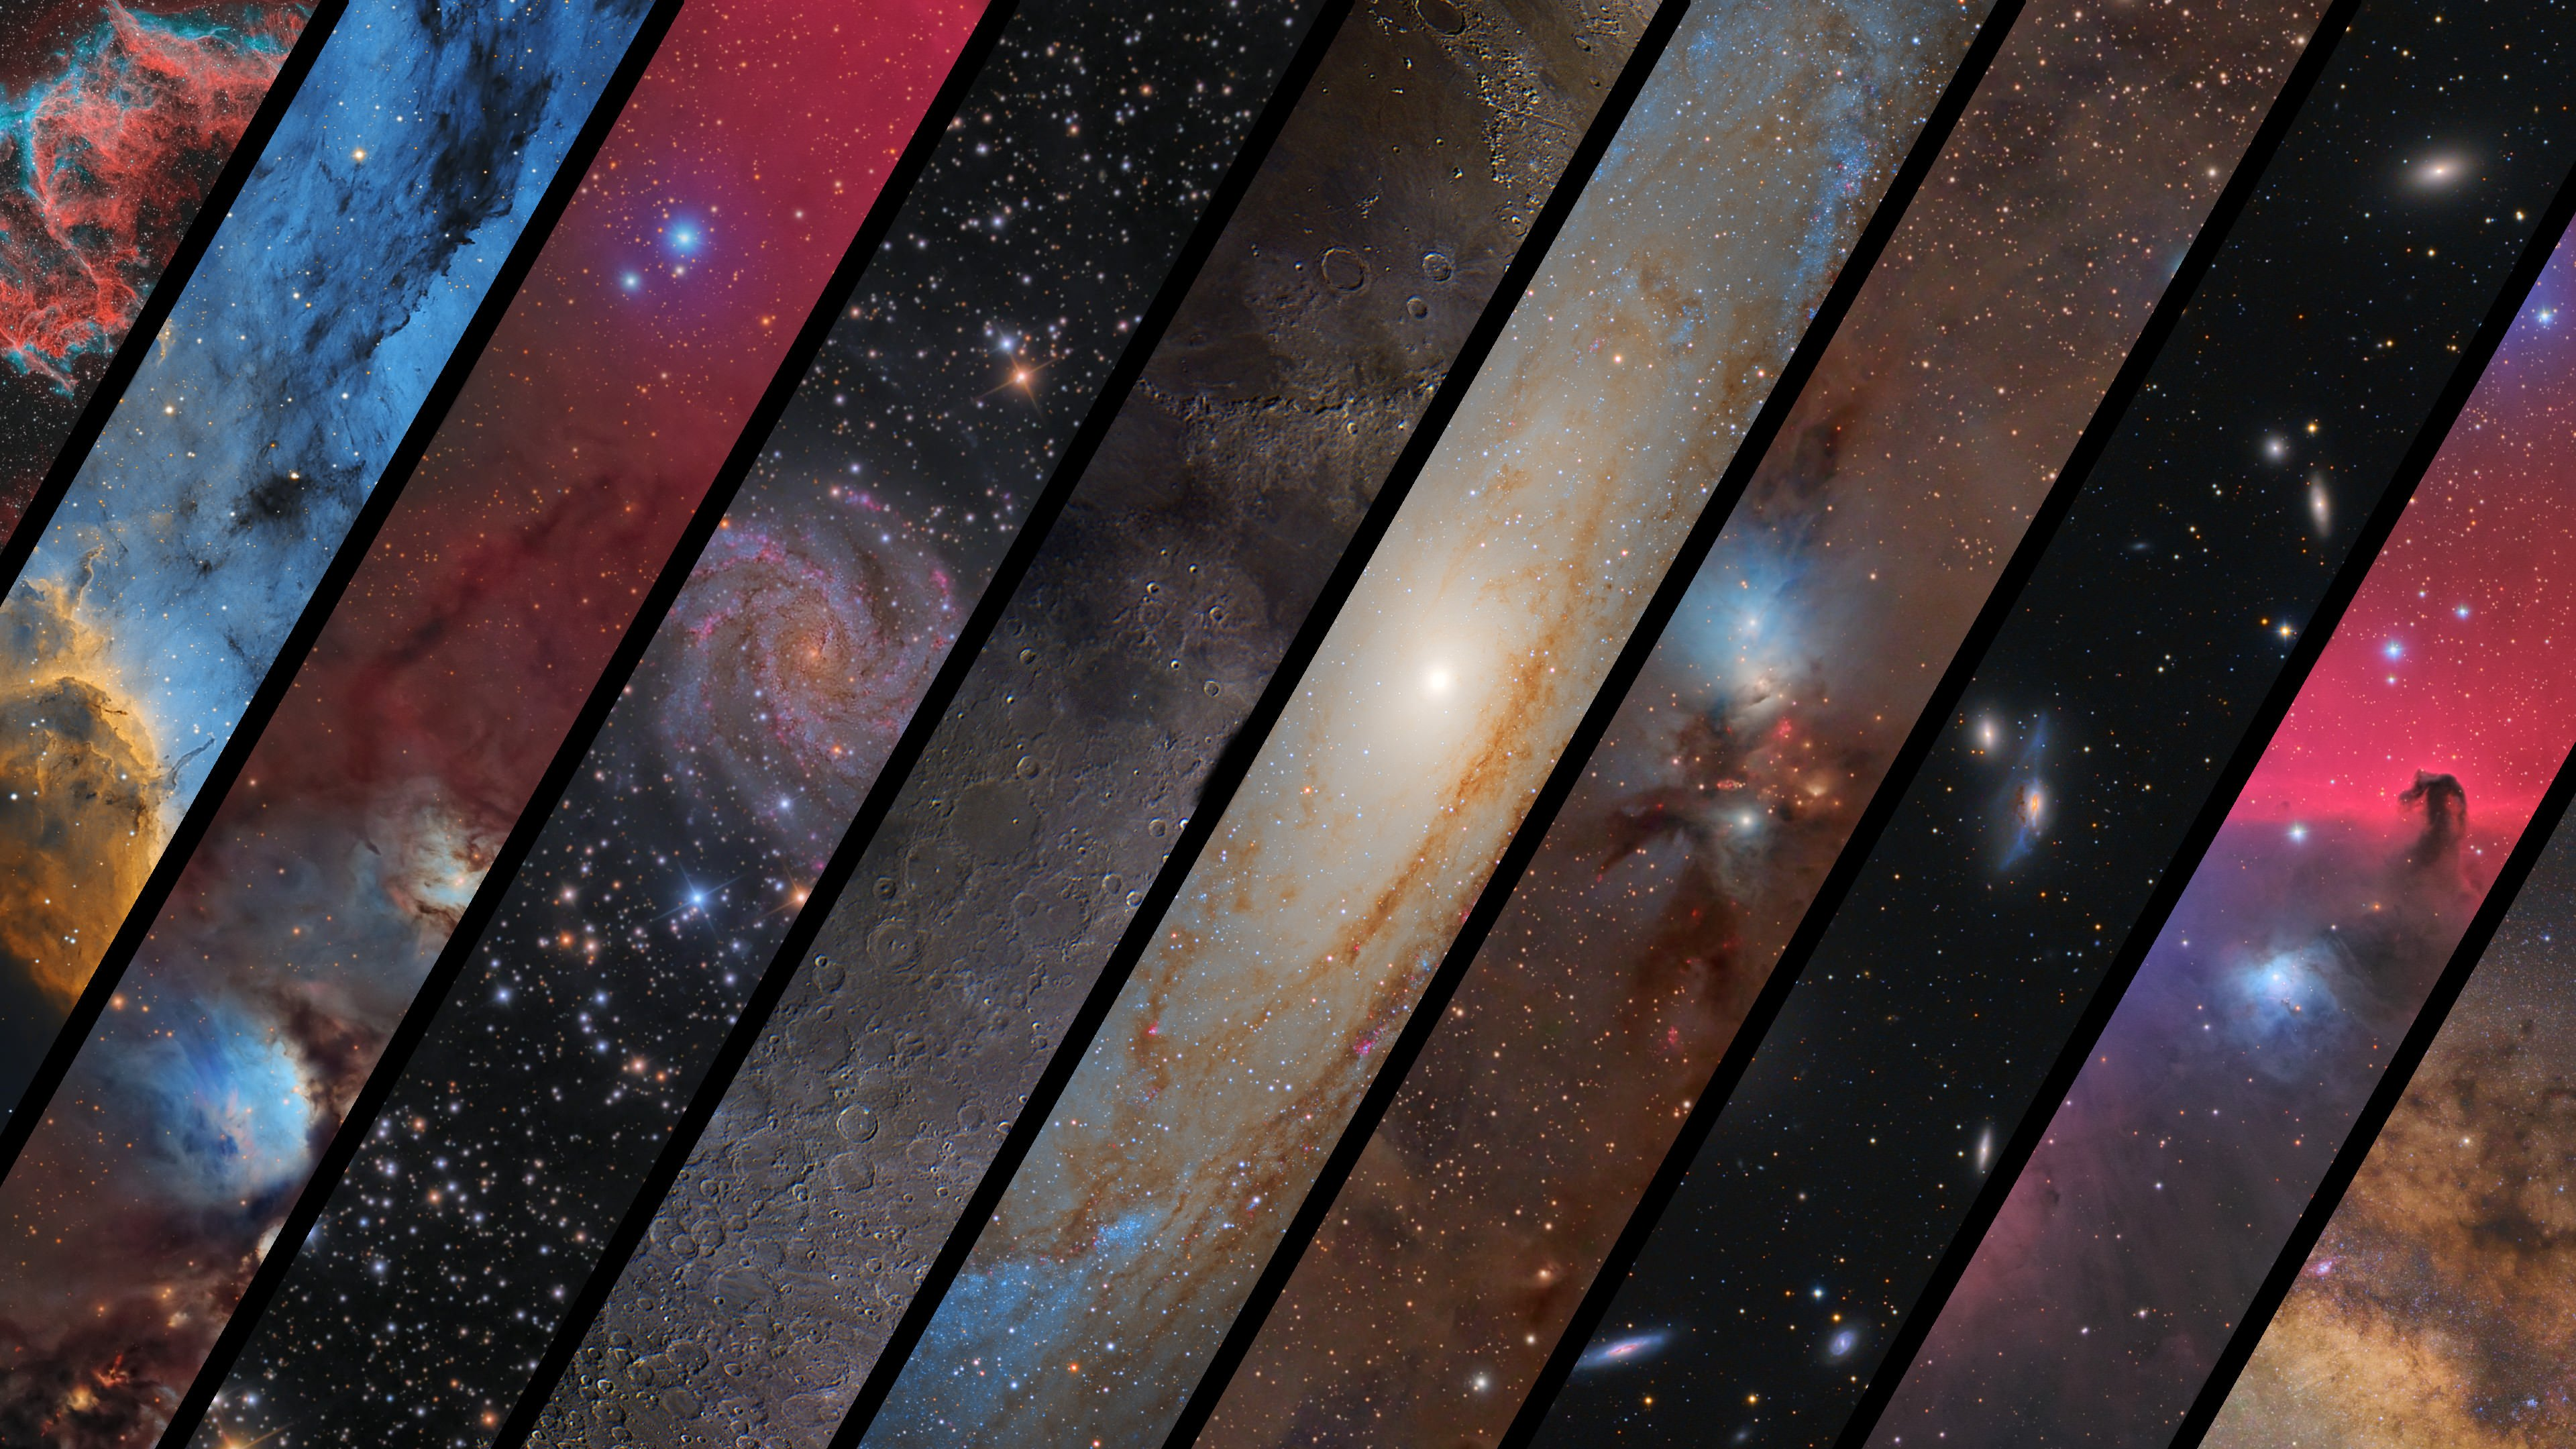 I made a 4k wallpaper consisting of my favorite astronomy images 3840x2160